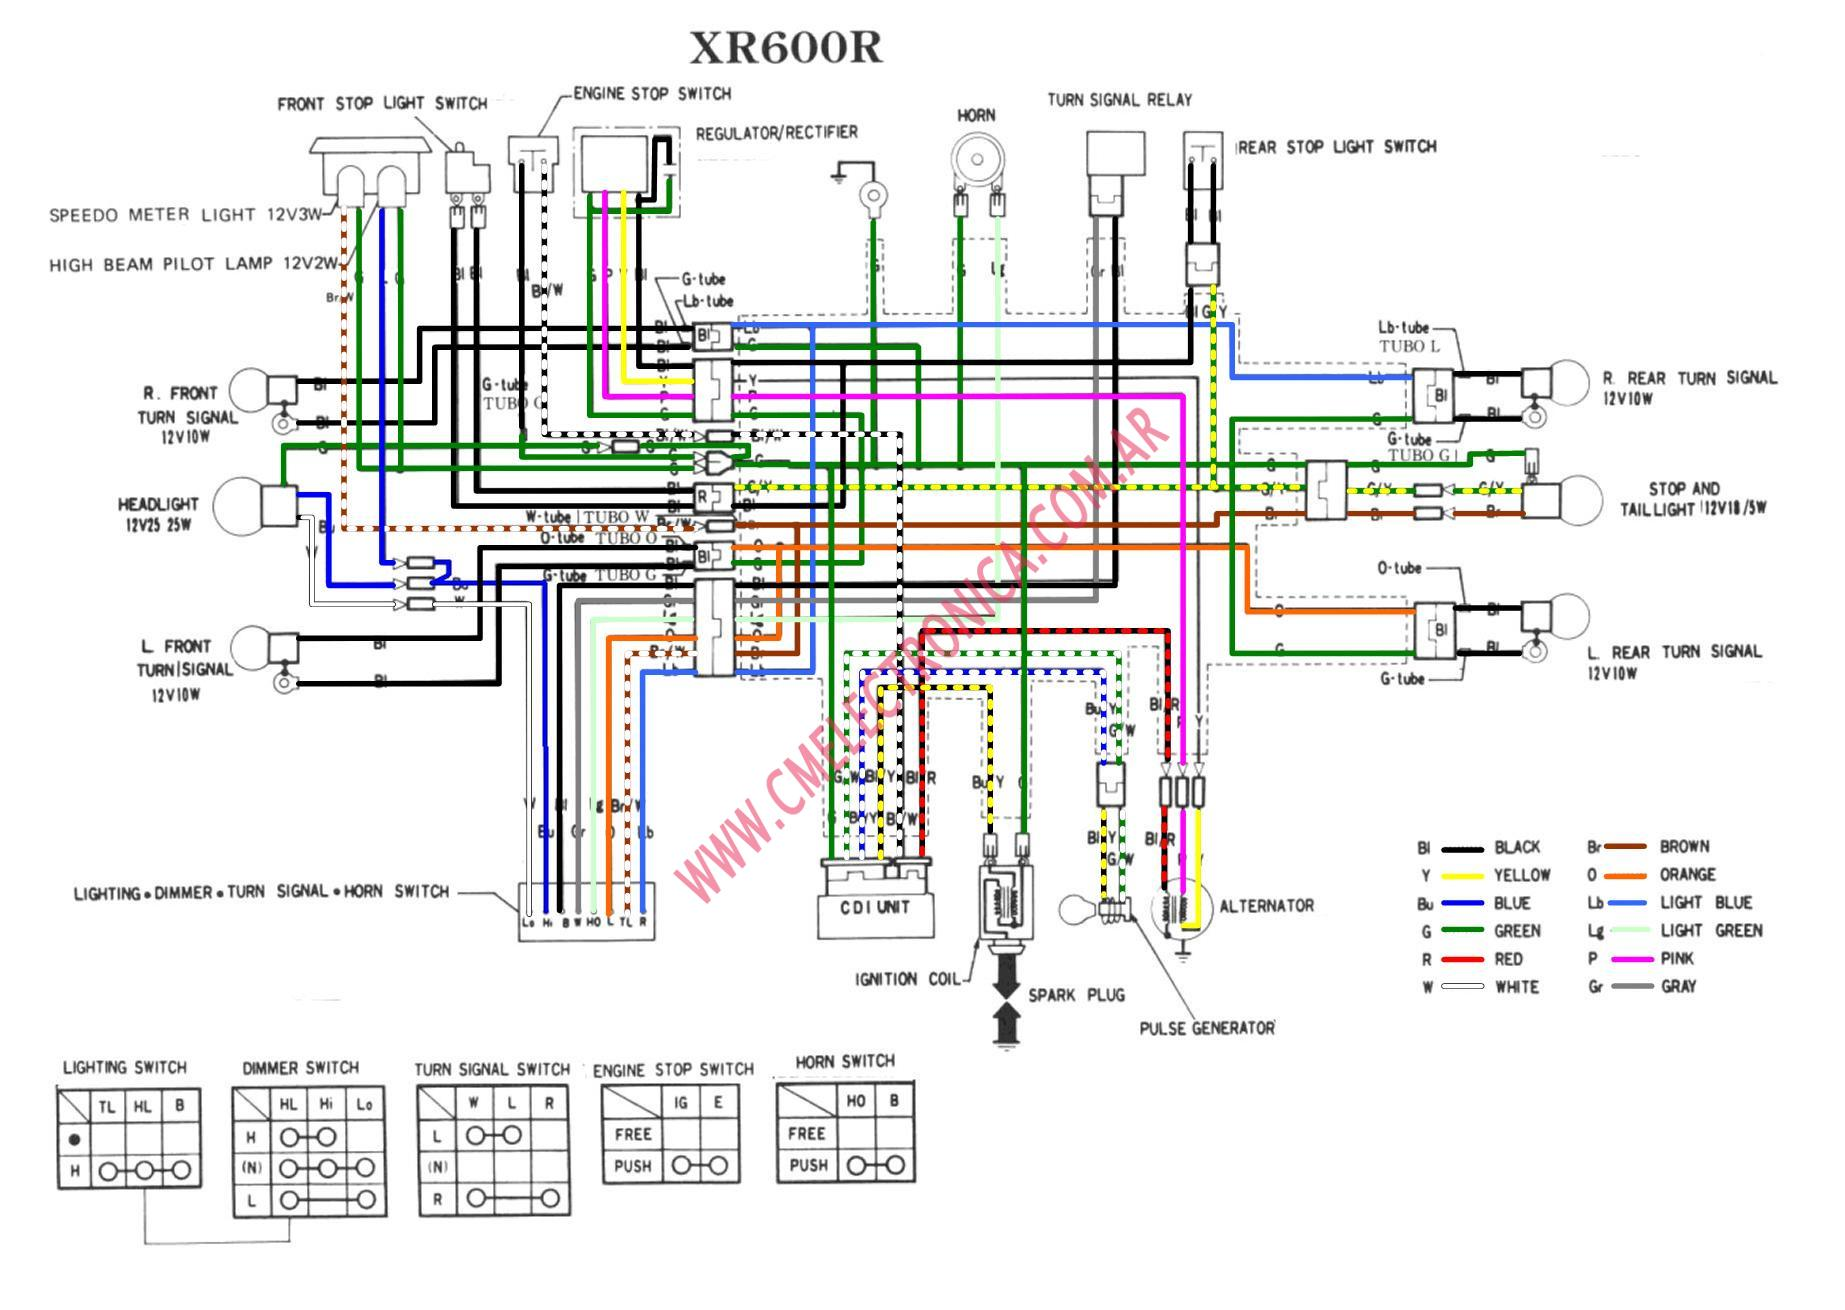 honda xr600 honda xr 250 wiring diagram xr200r 1990 headlight wiring diagram 1978 honda xl 125 wiring diagram at readyjetset.co